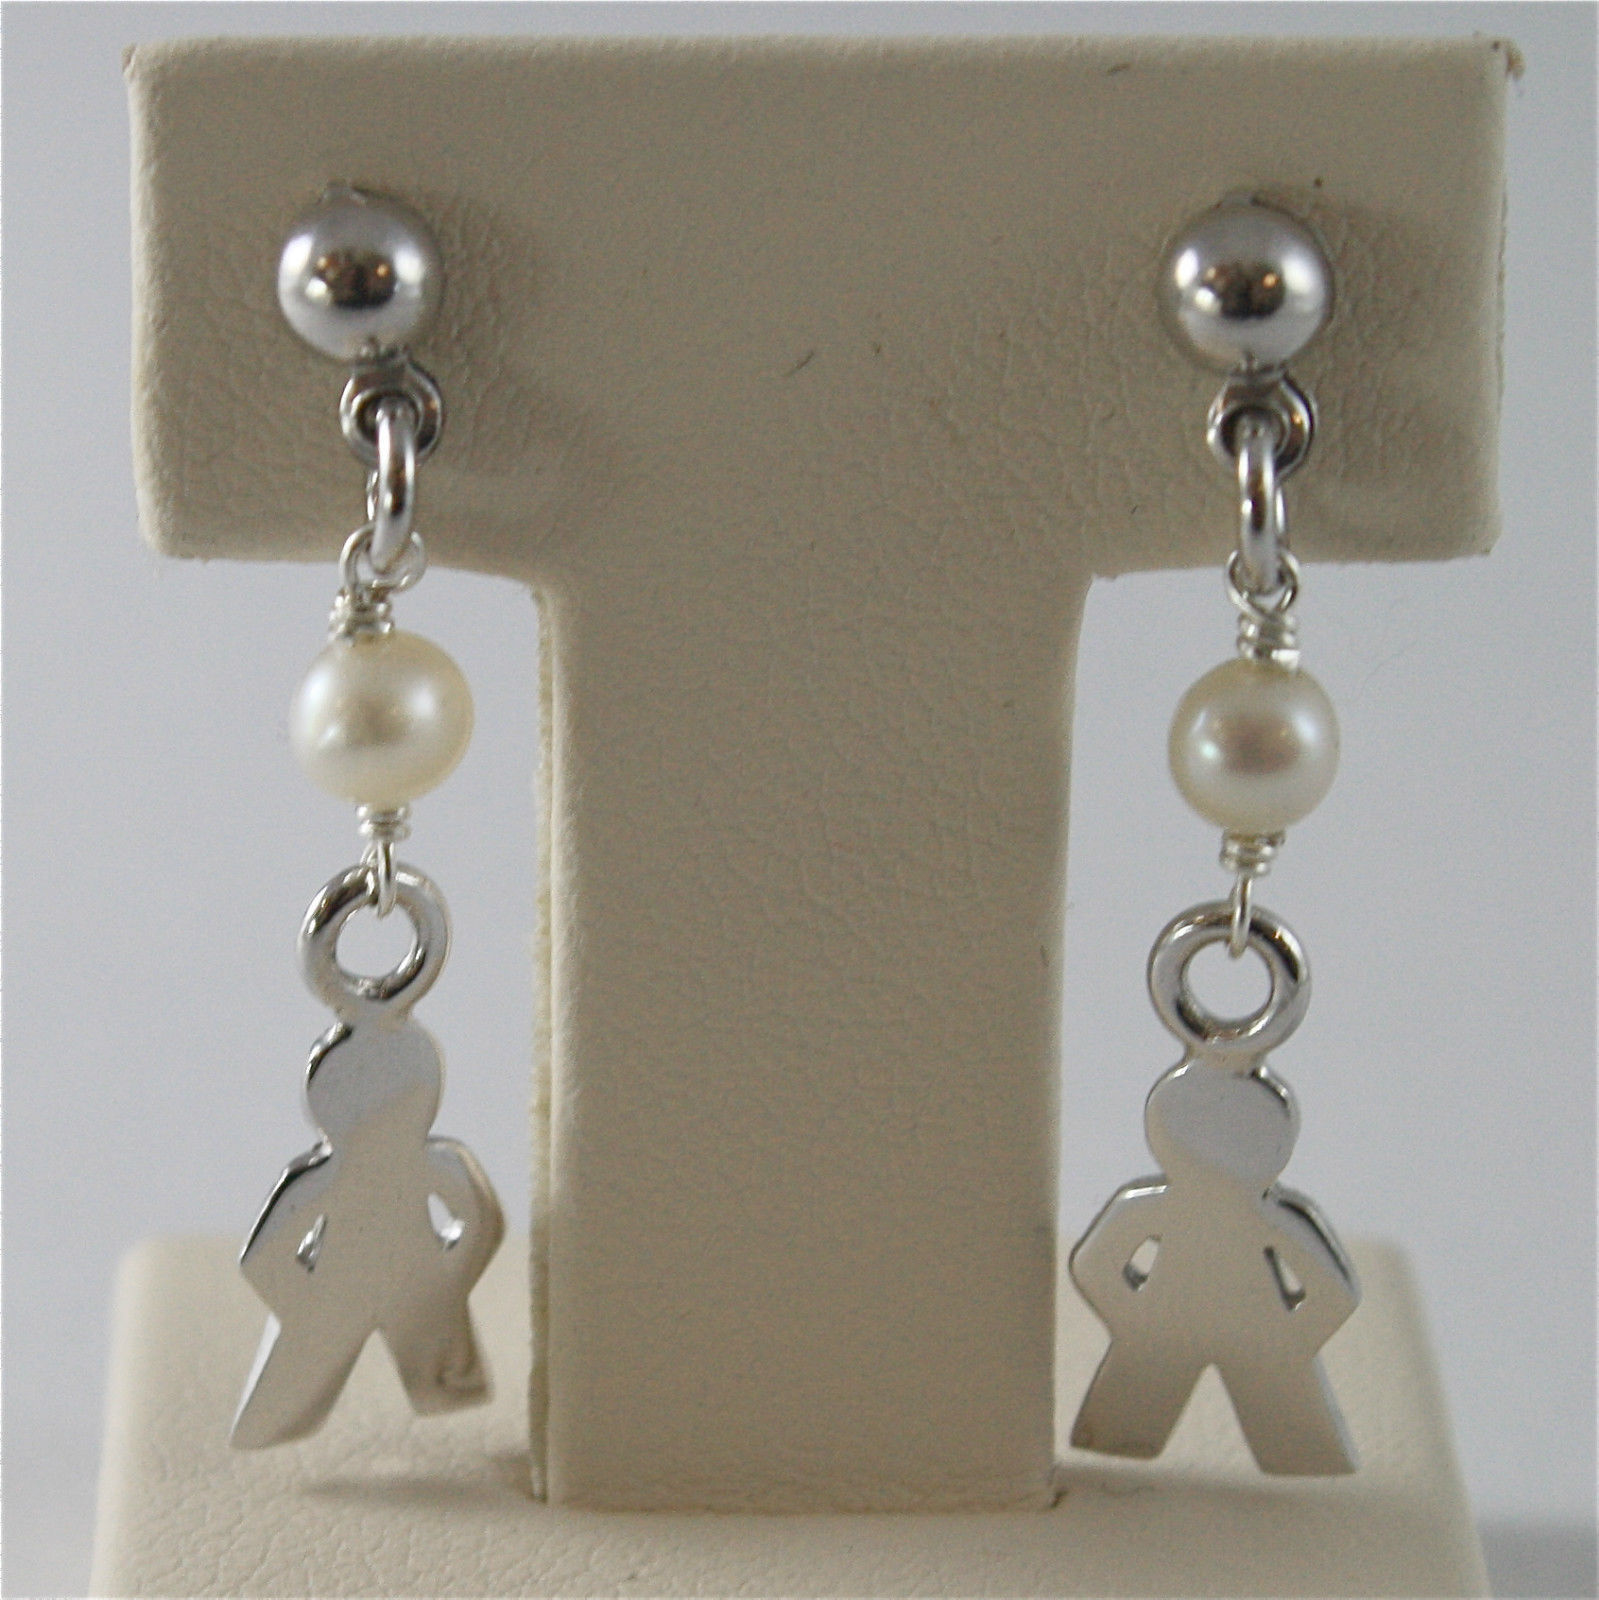 925 RHODIUM SILVER EARRINGS WITH 4 MM FW PEARLS AND BABY BOY PENDANTS 1.18 INCH